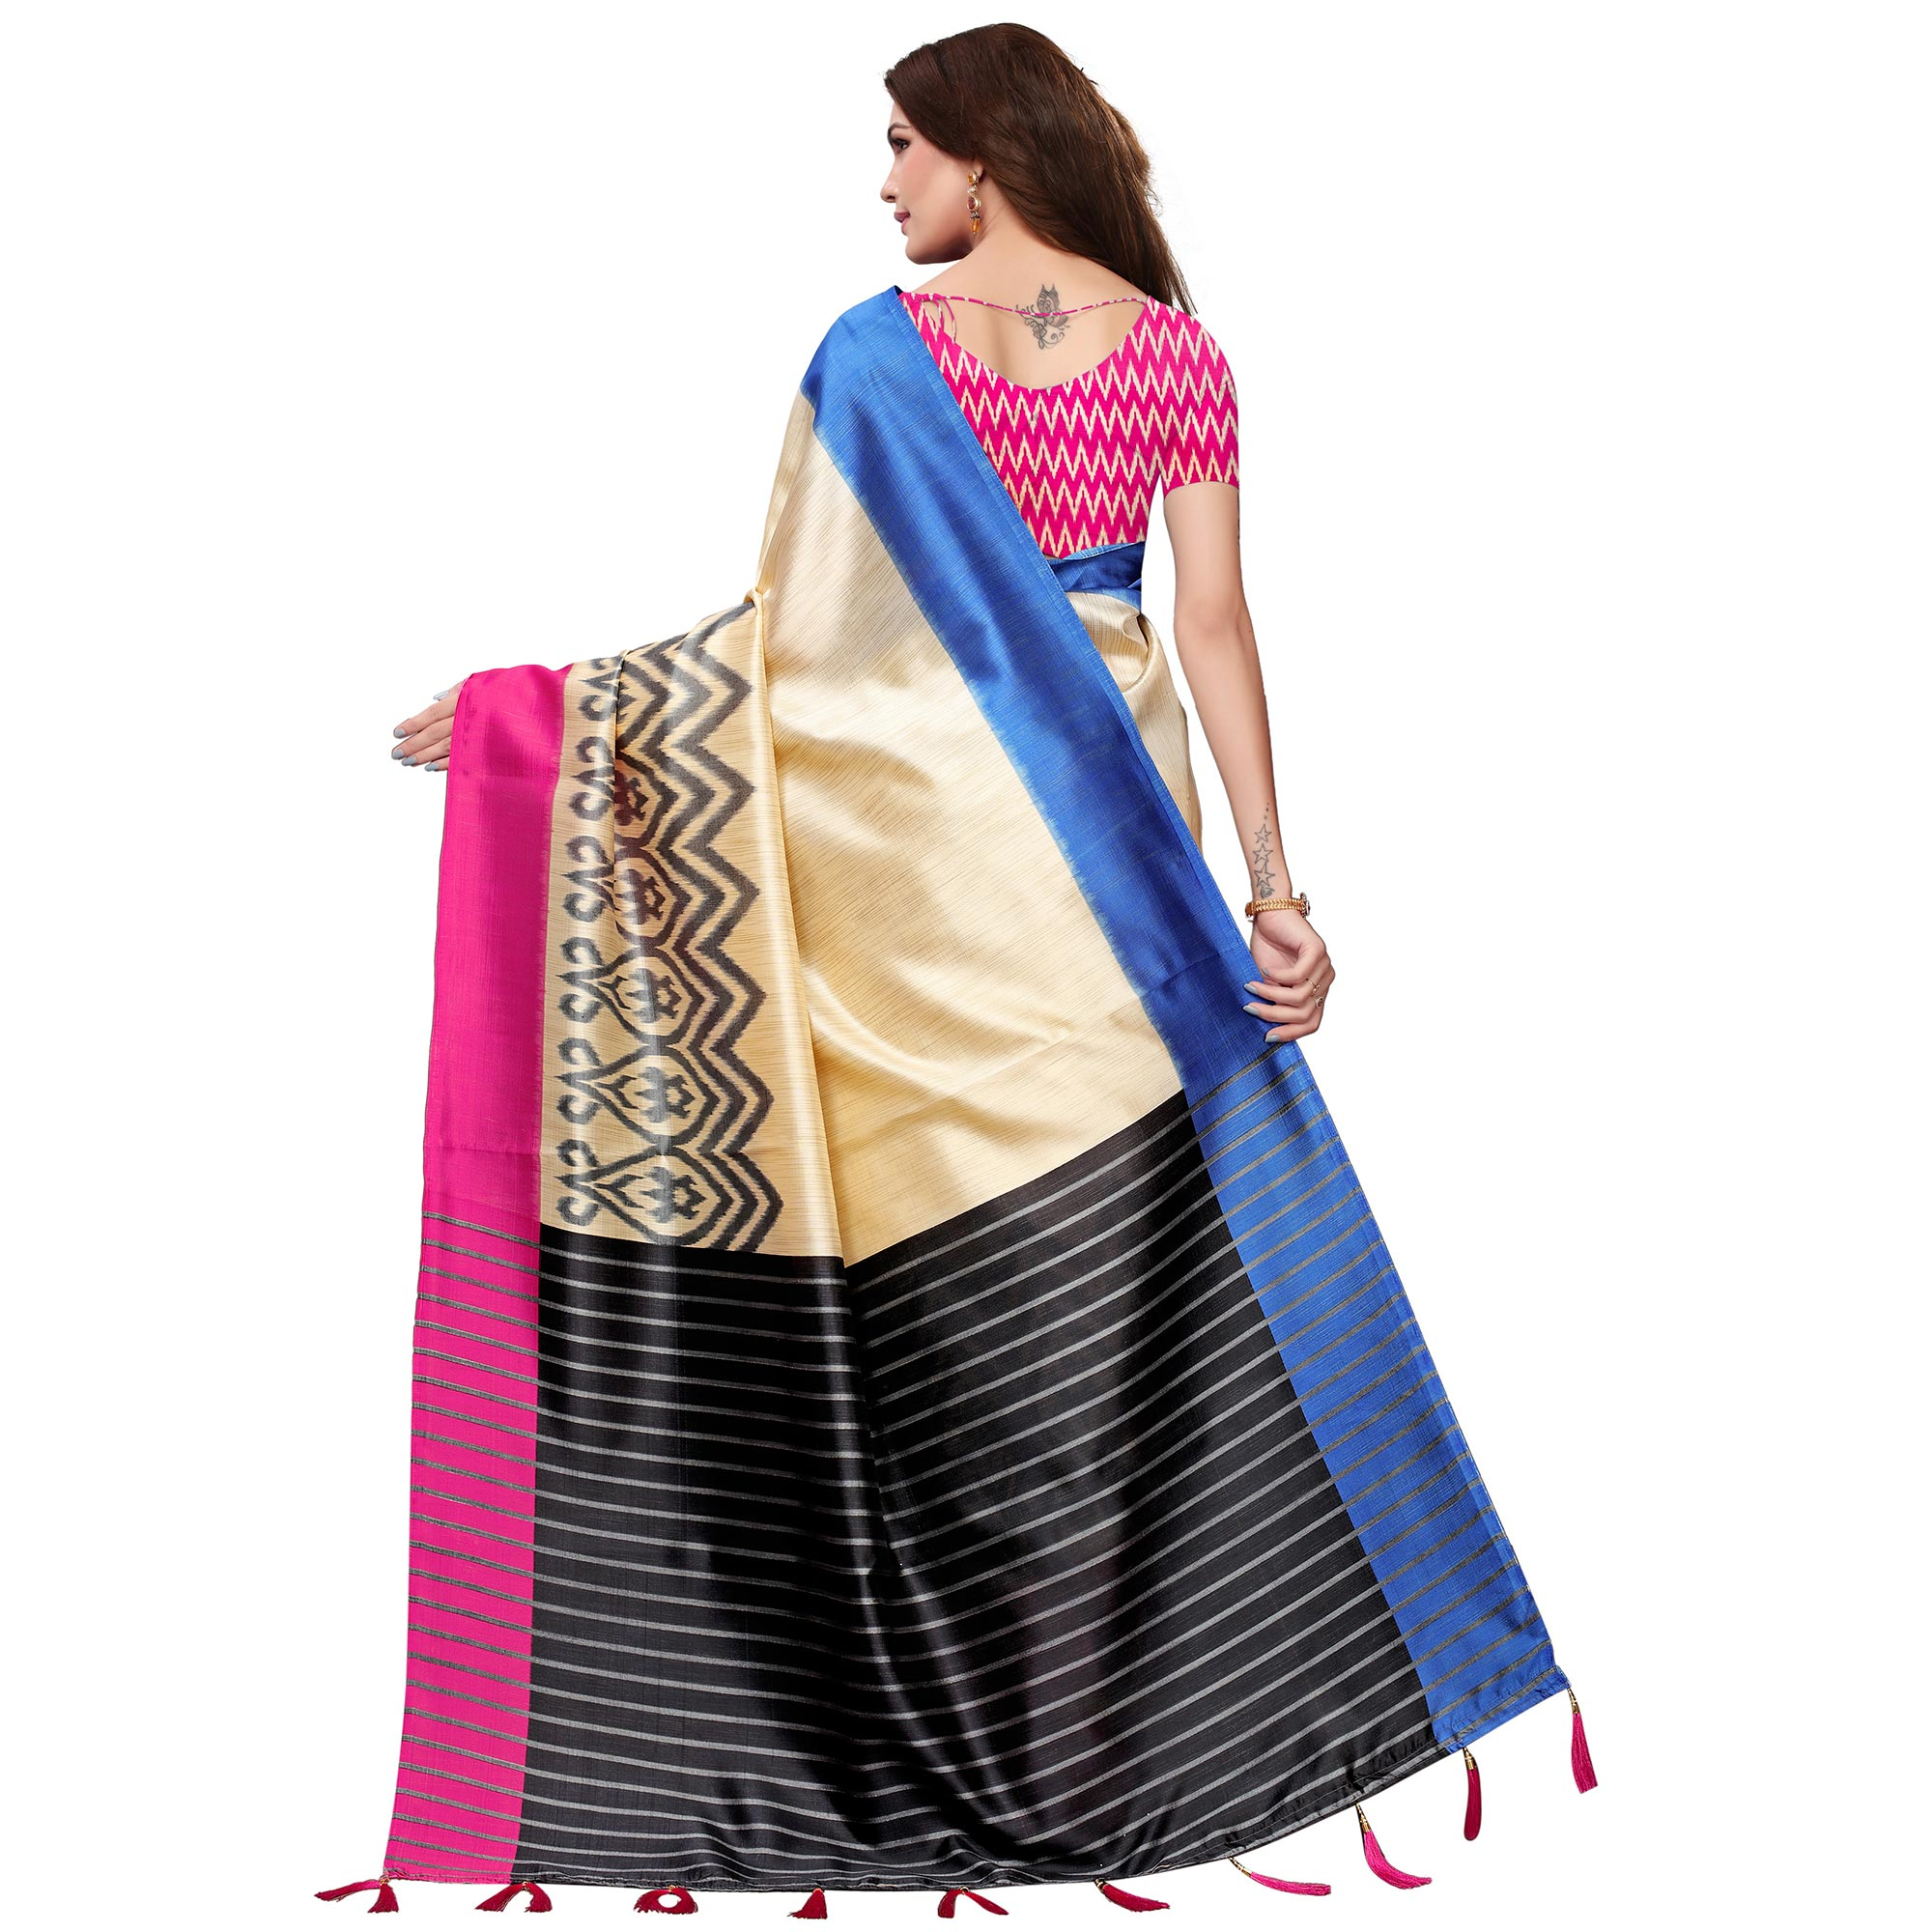 Mesmerising Cream-Pink Colored Festive Wear Mysore Silk Saree With Tassels